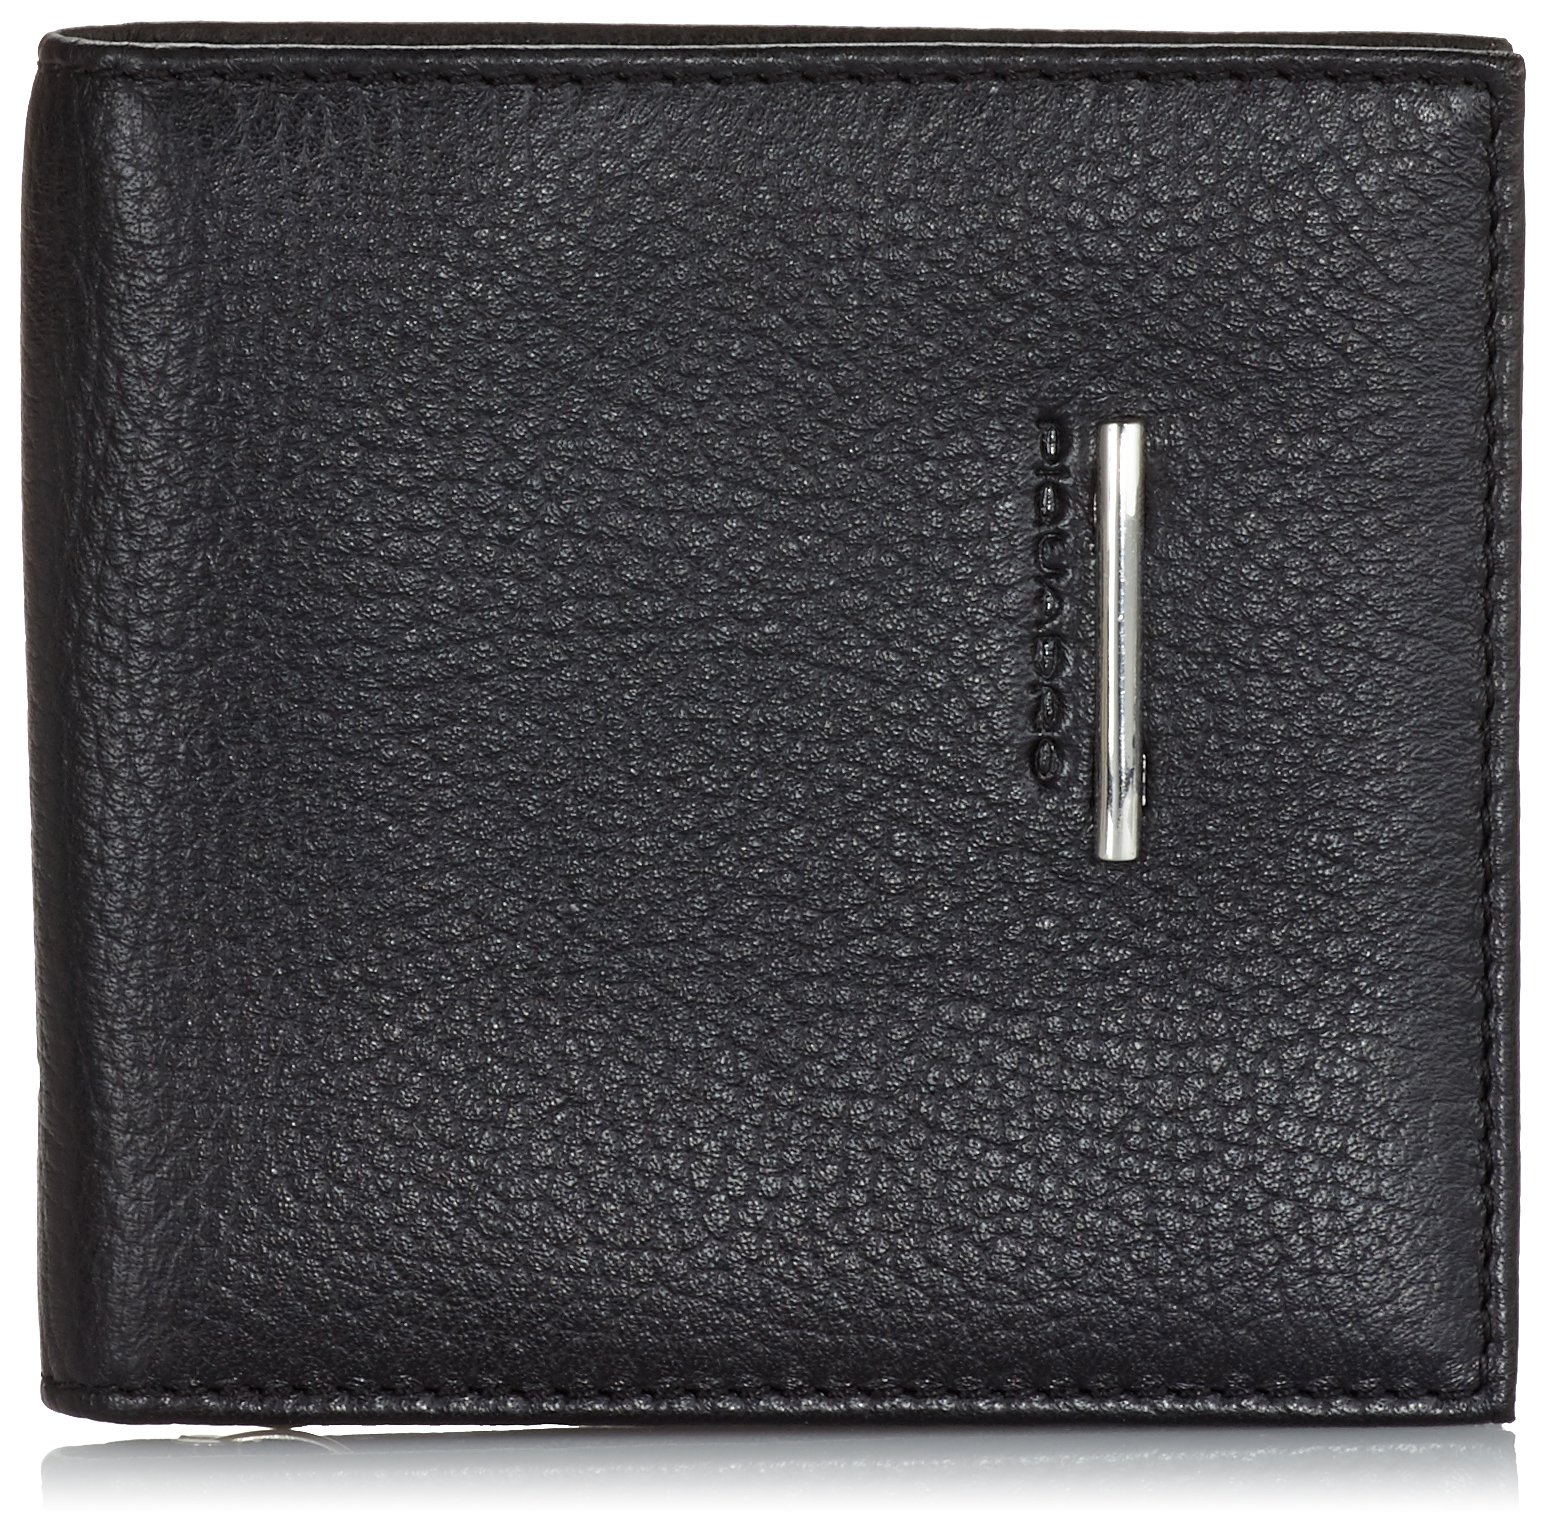 Piquadro Men's Wallet With Document, Credit Card and Banknote Facility Black